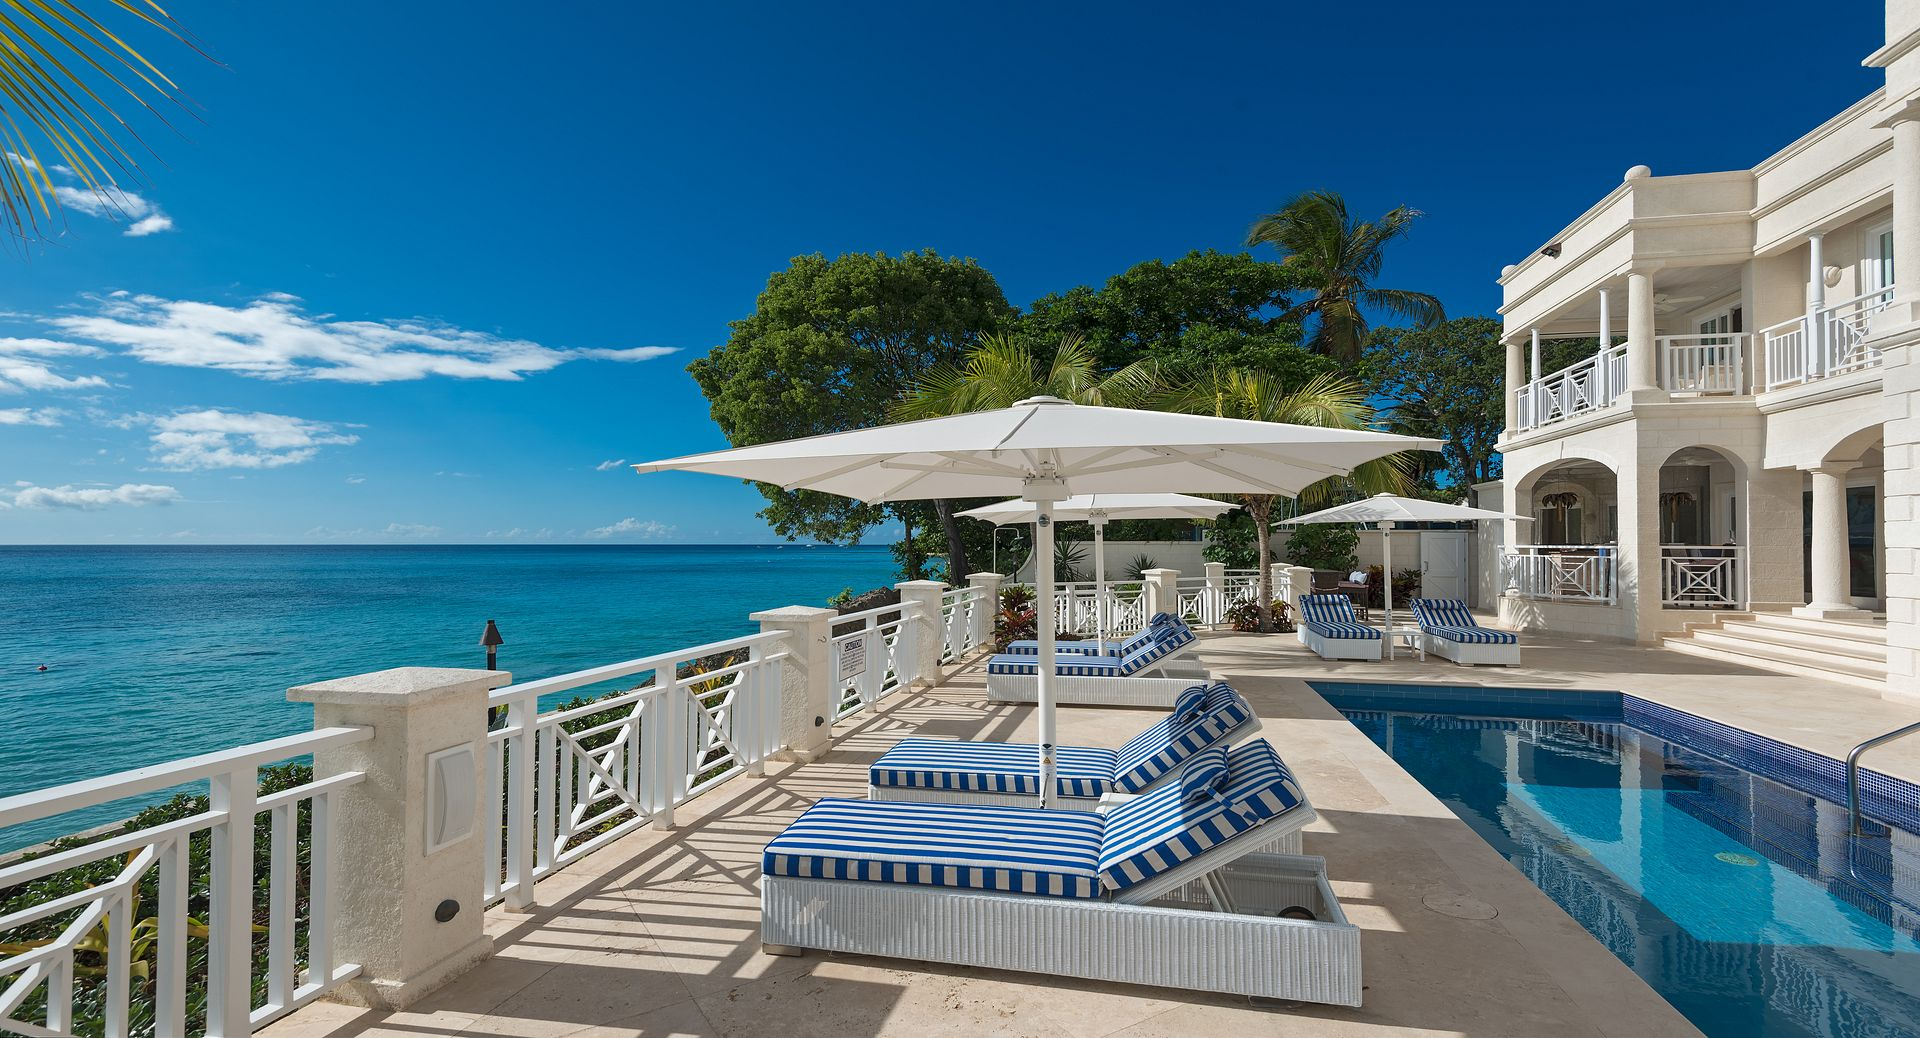 barbados villas for rent - Blue Lagoon